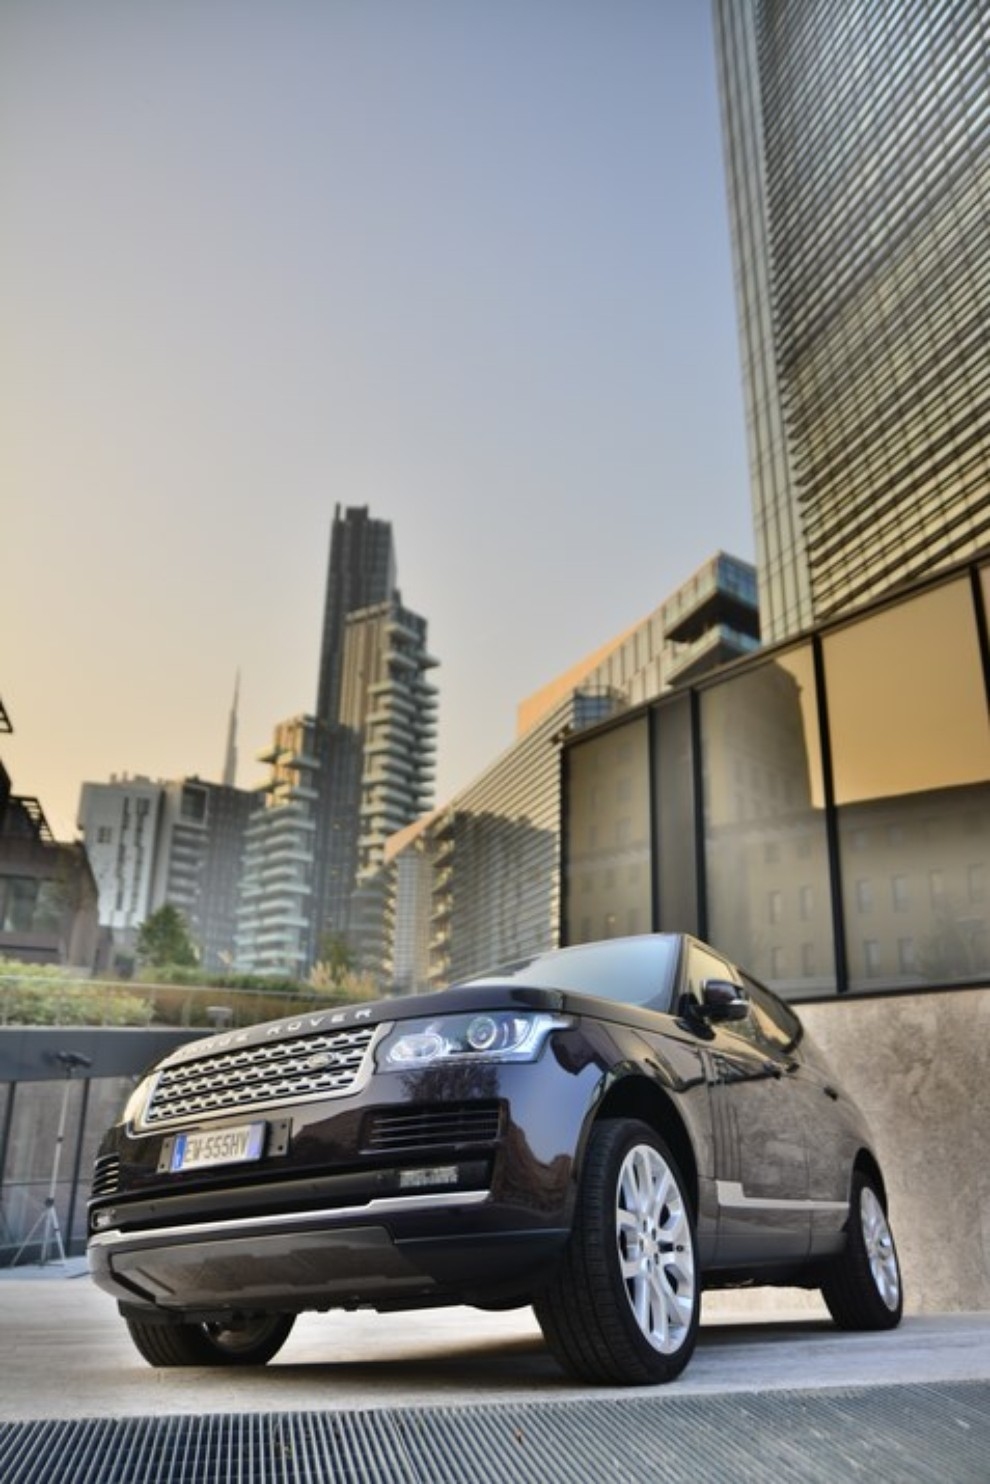 Land Rover New Discovery By Invitation Only Roma – Milano - Foto 10 di 12